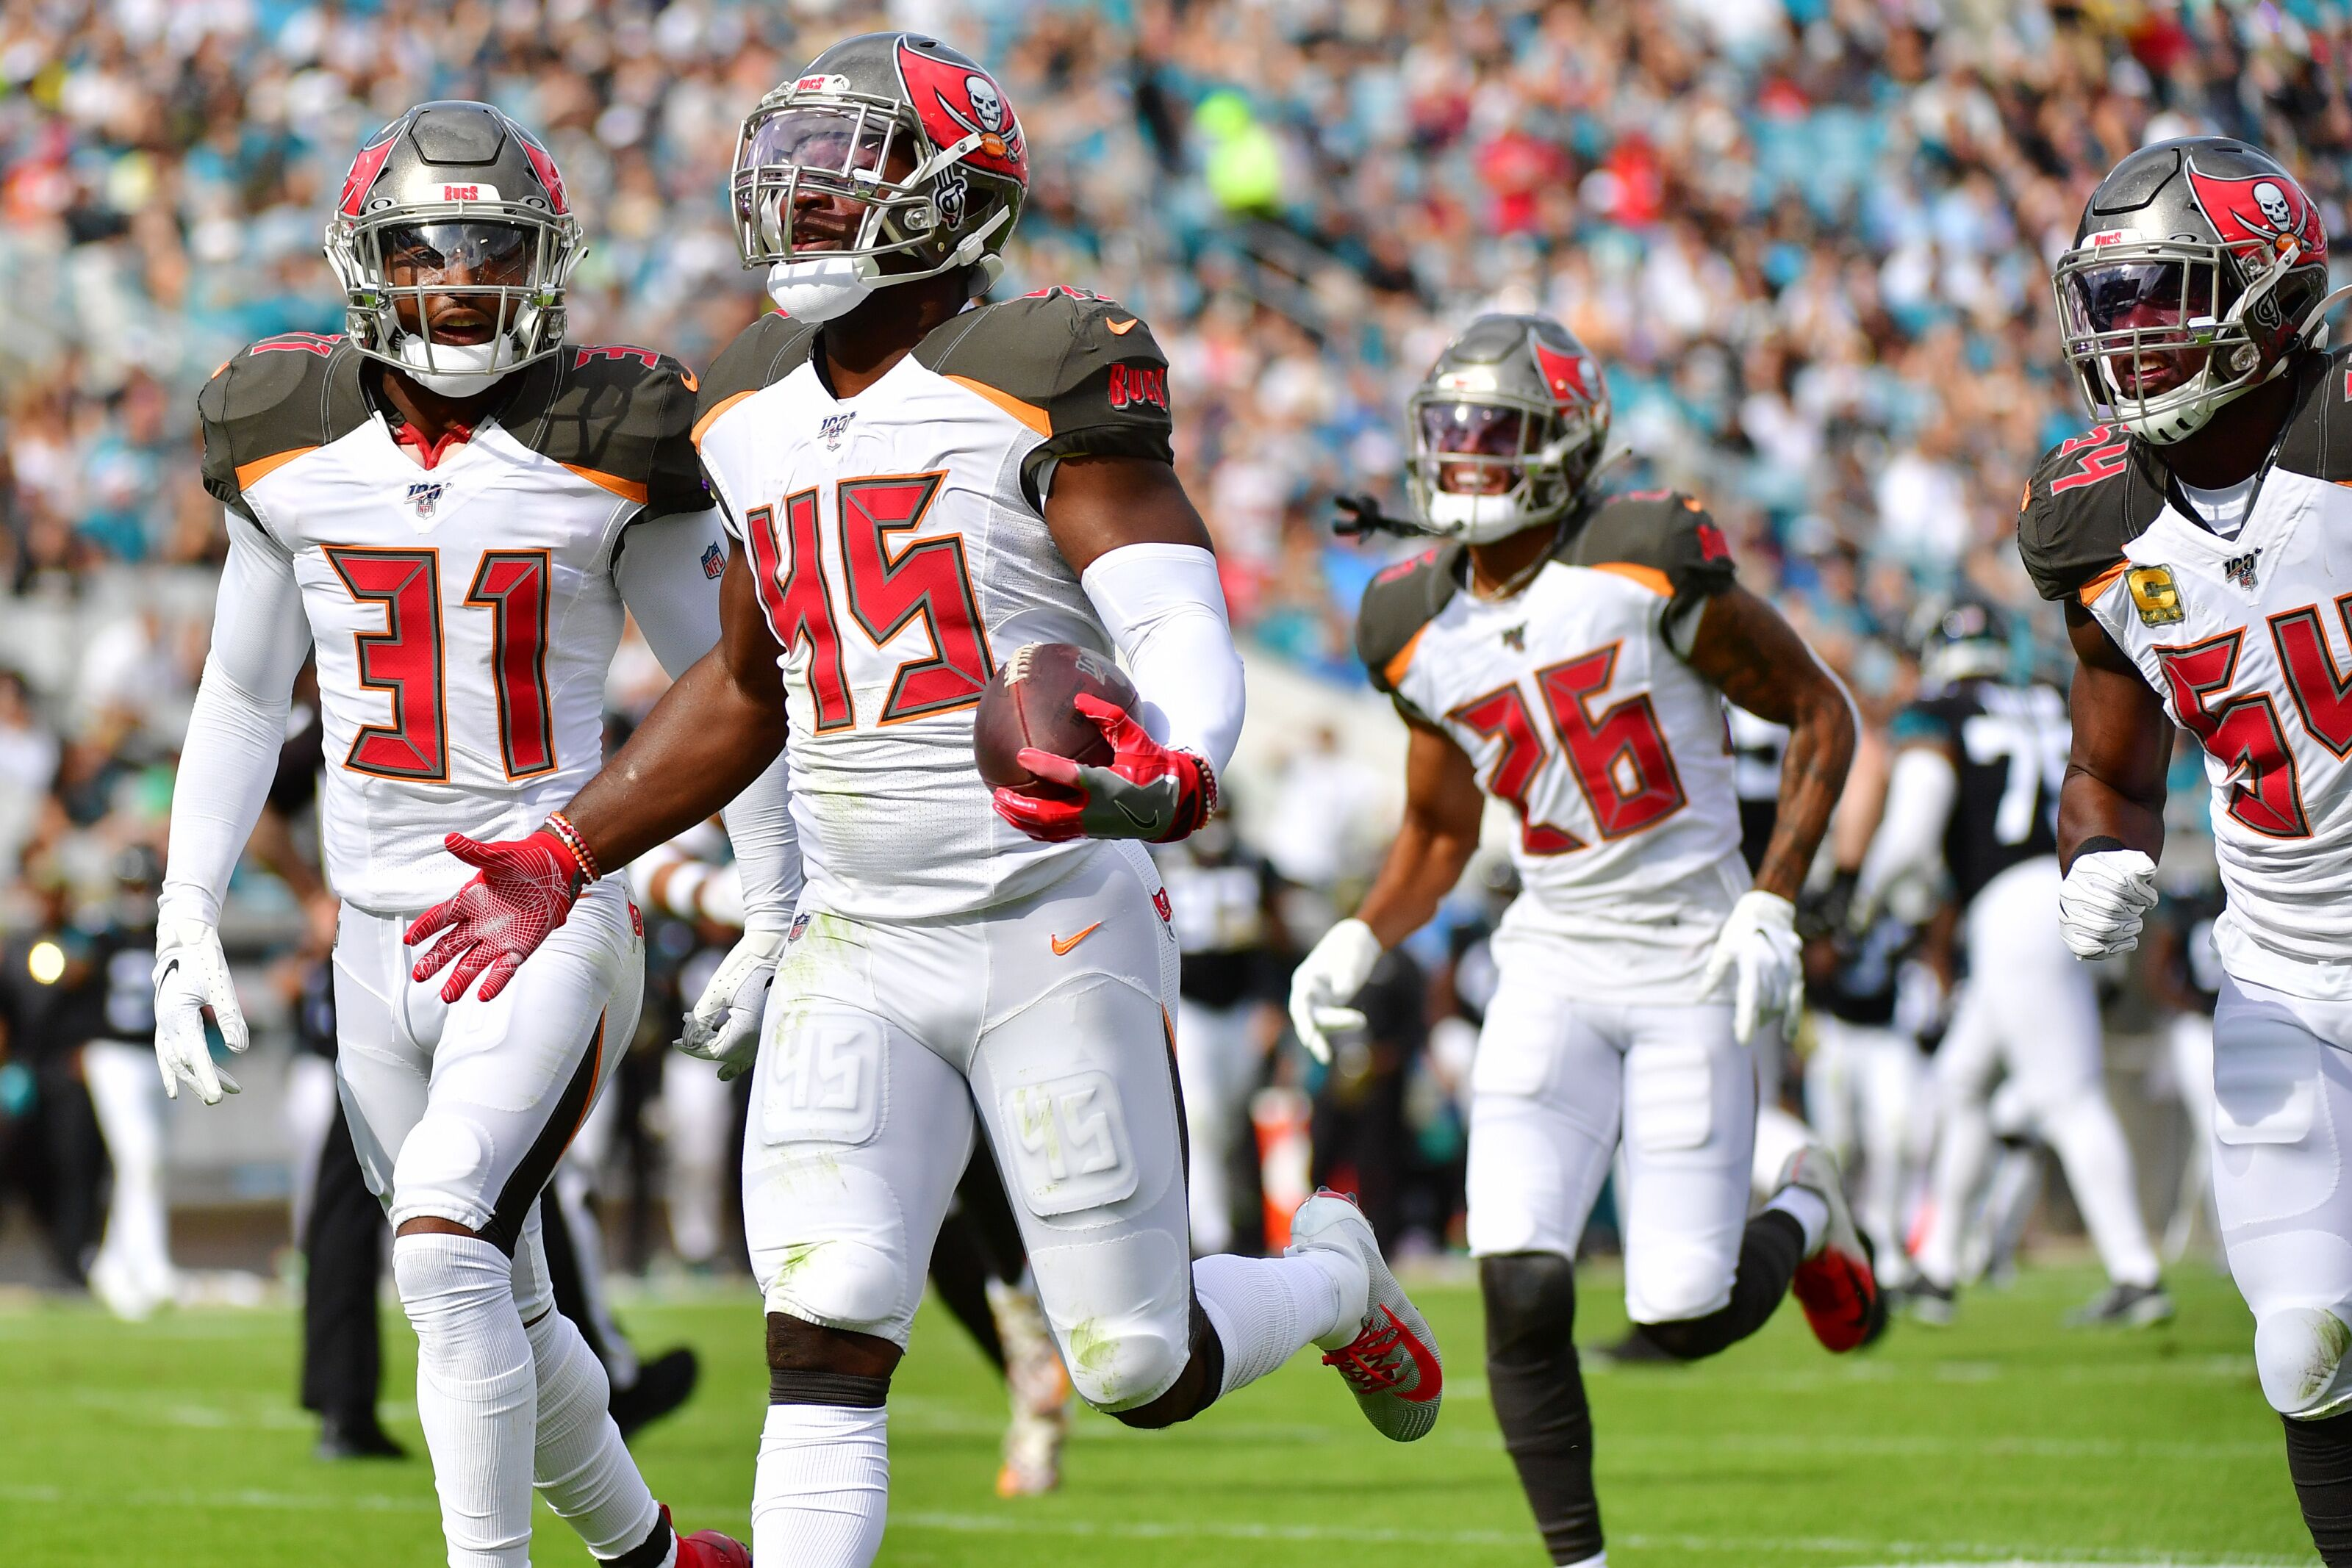 Tampa Bay Buccaneers: 2019 rookie class ranked in top-10 by ESPN